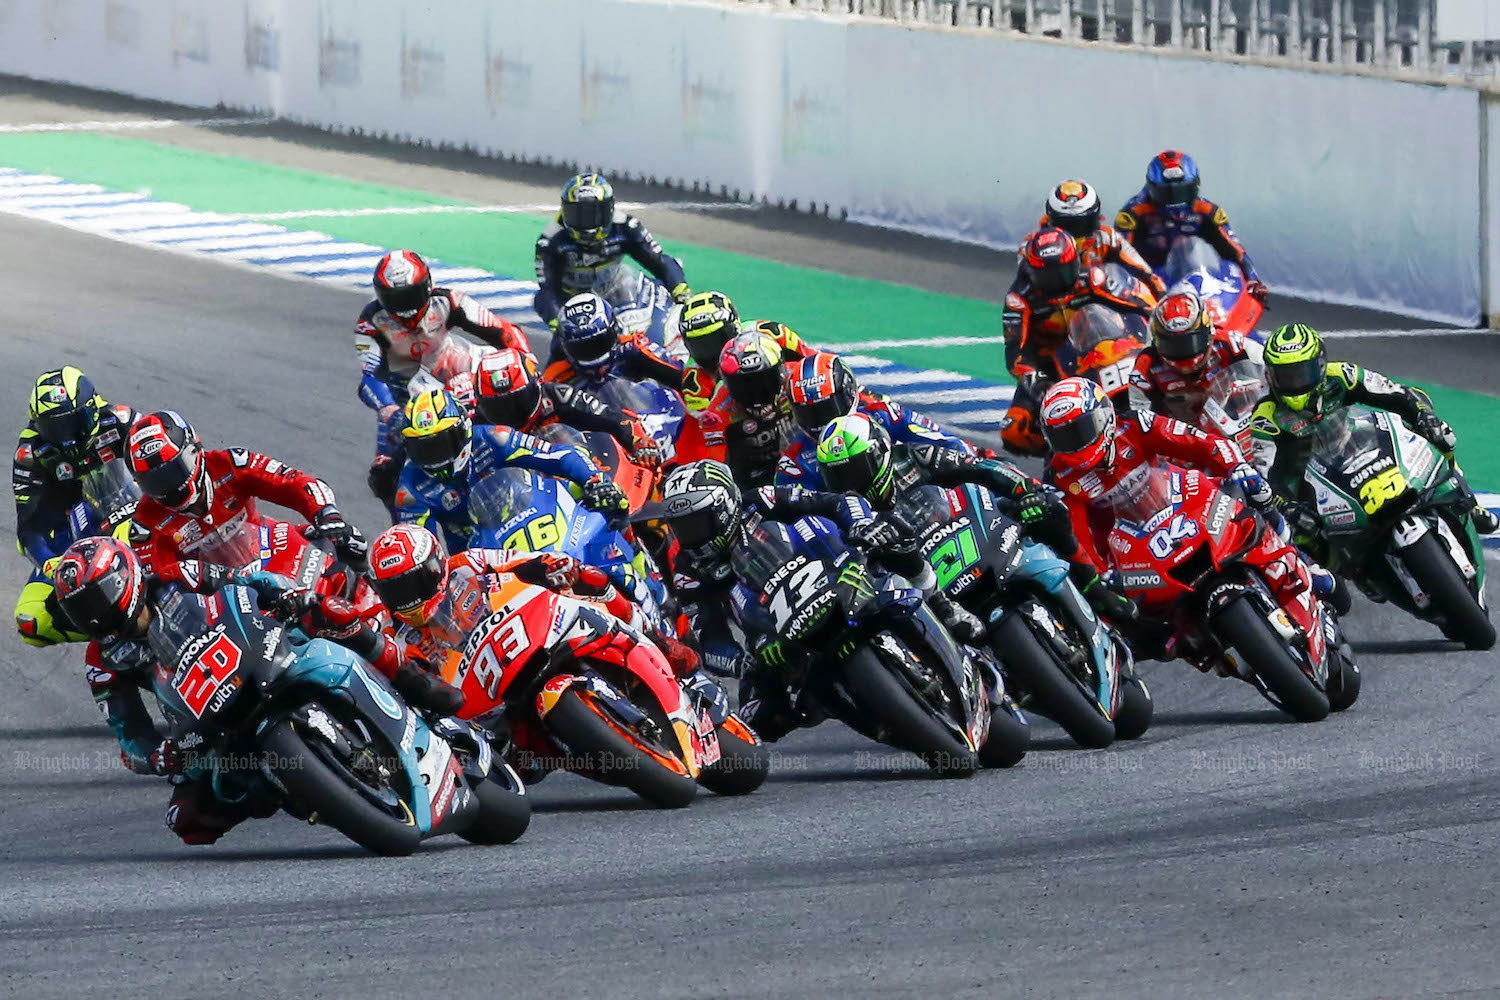 The Thai GP will not be taking place this season.